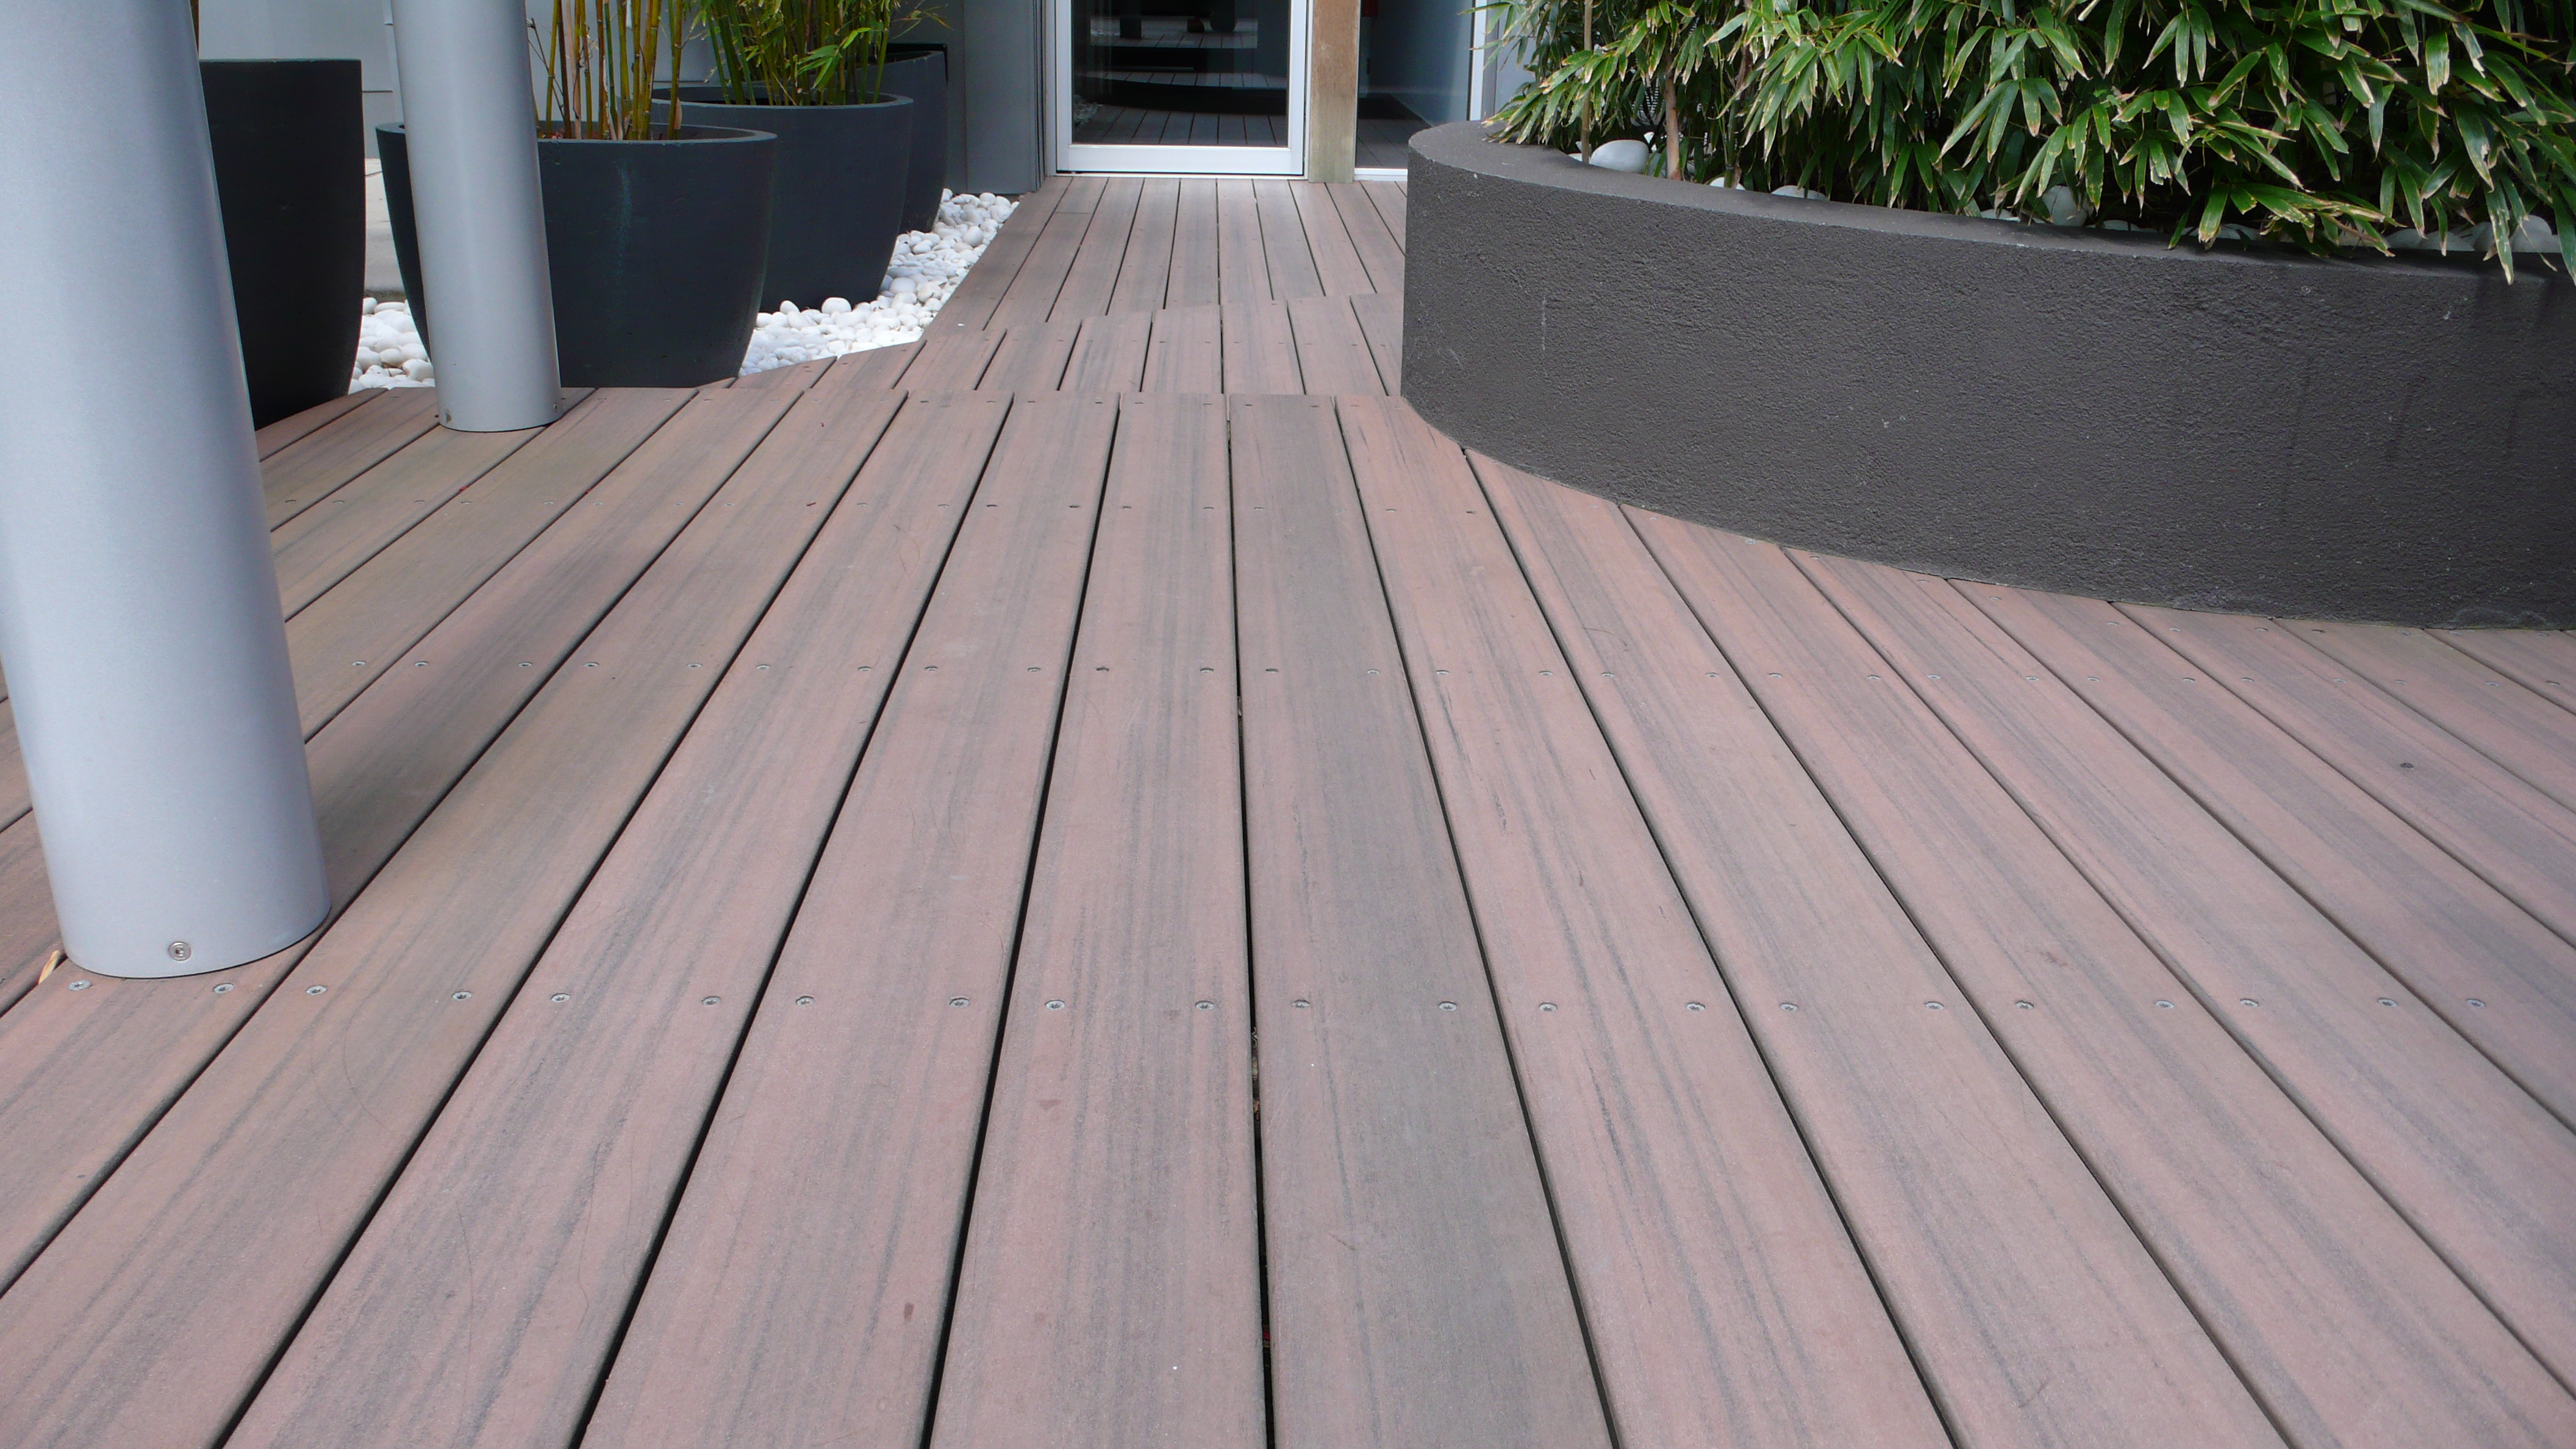 Modwood Decking Sydney Branson Building Material